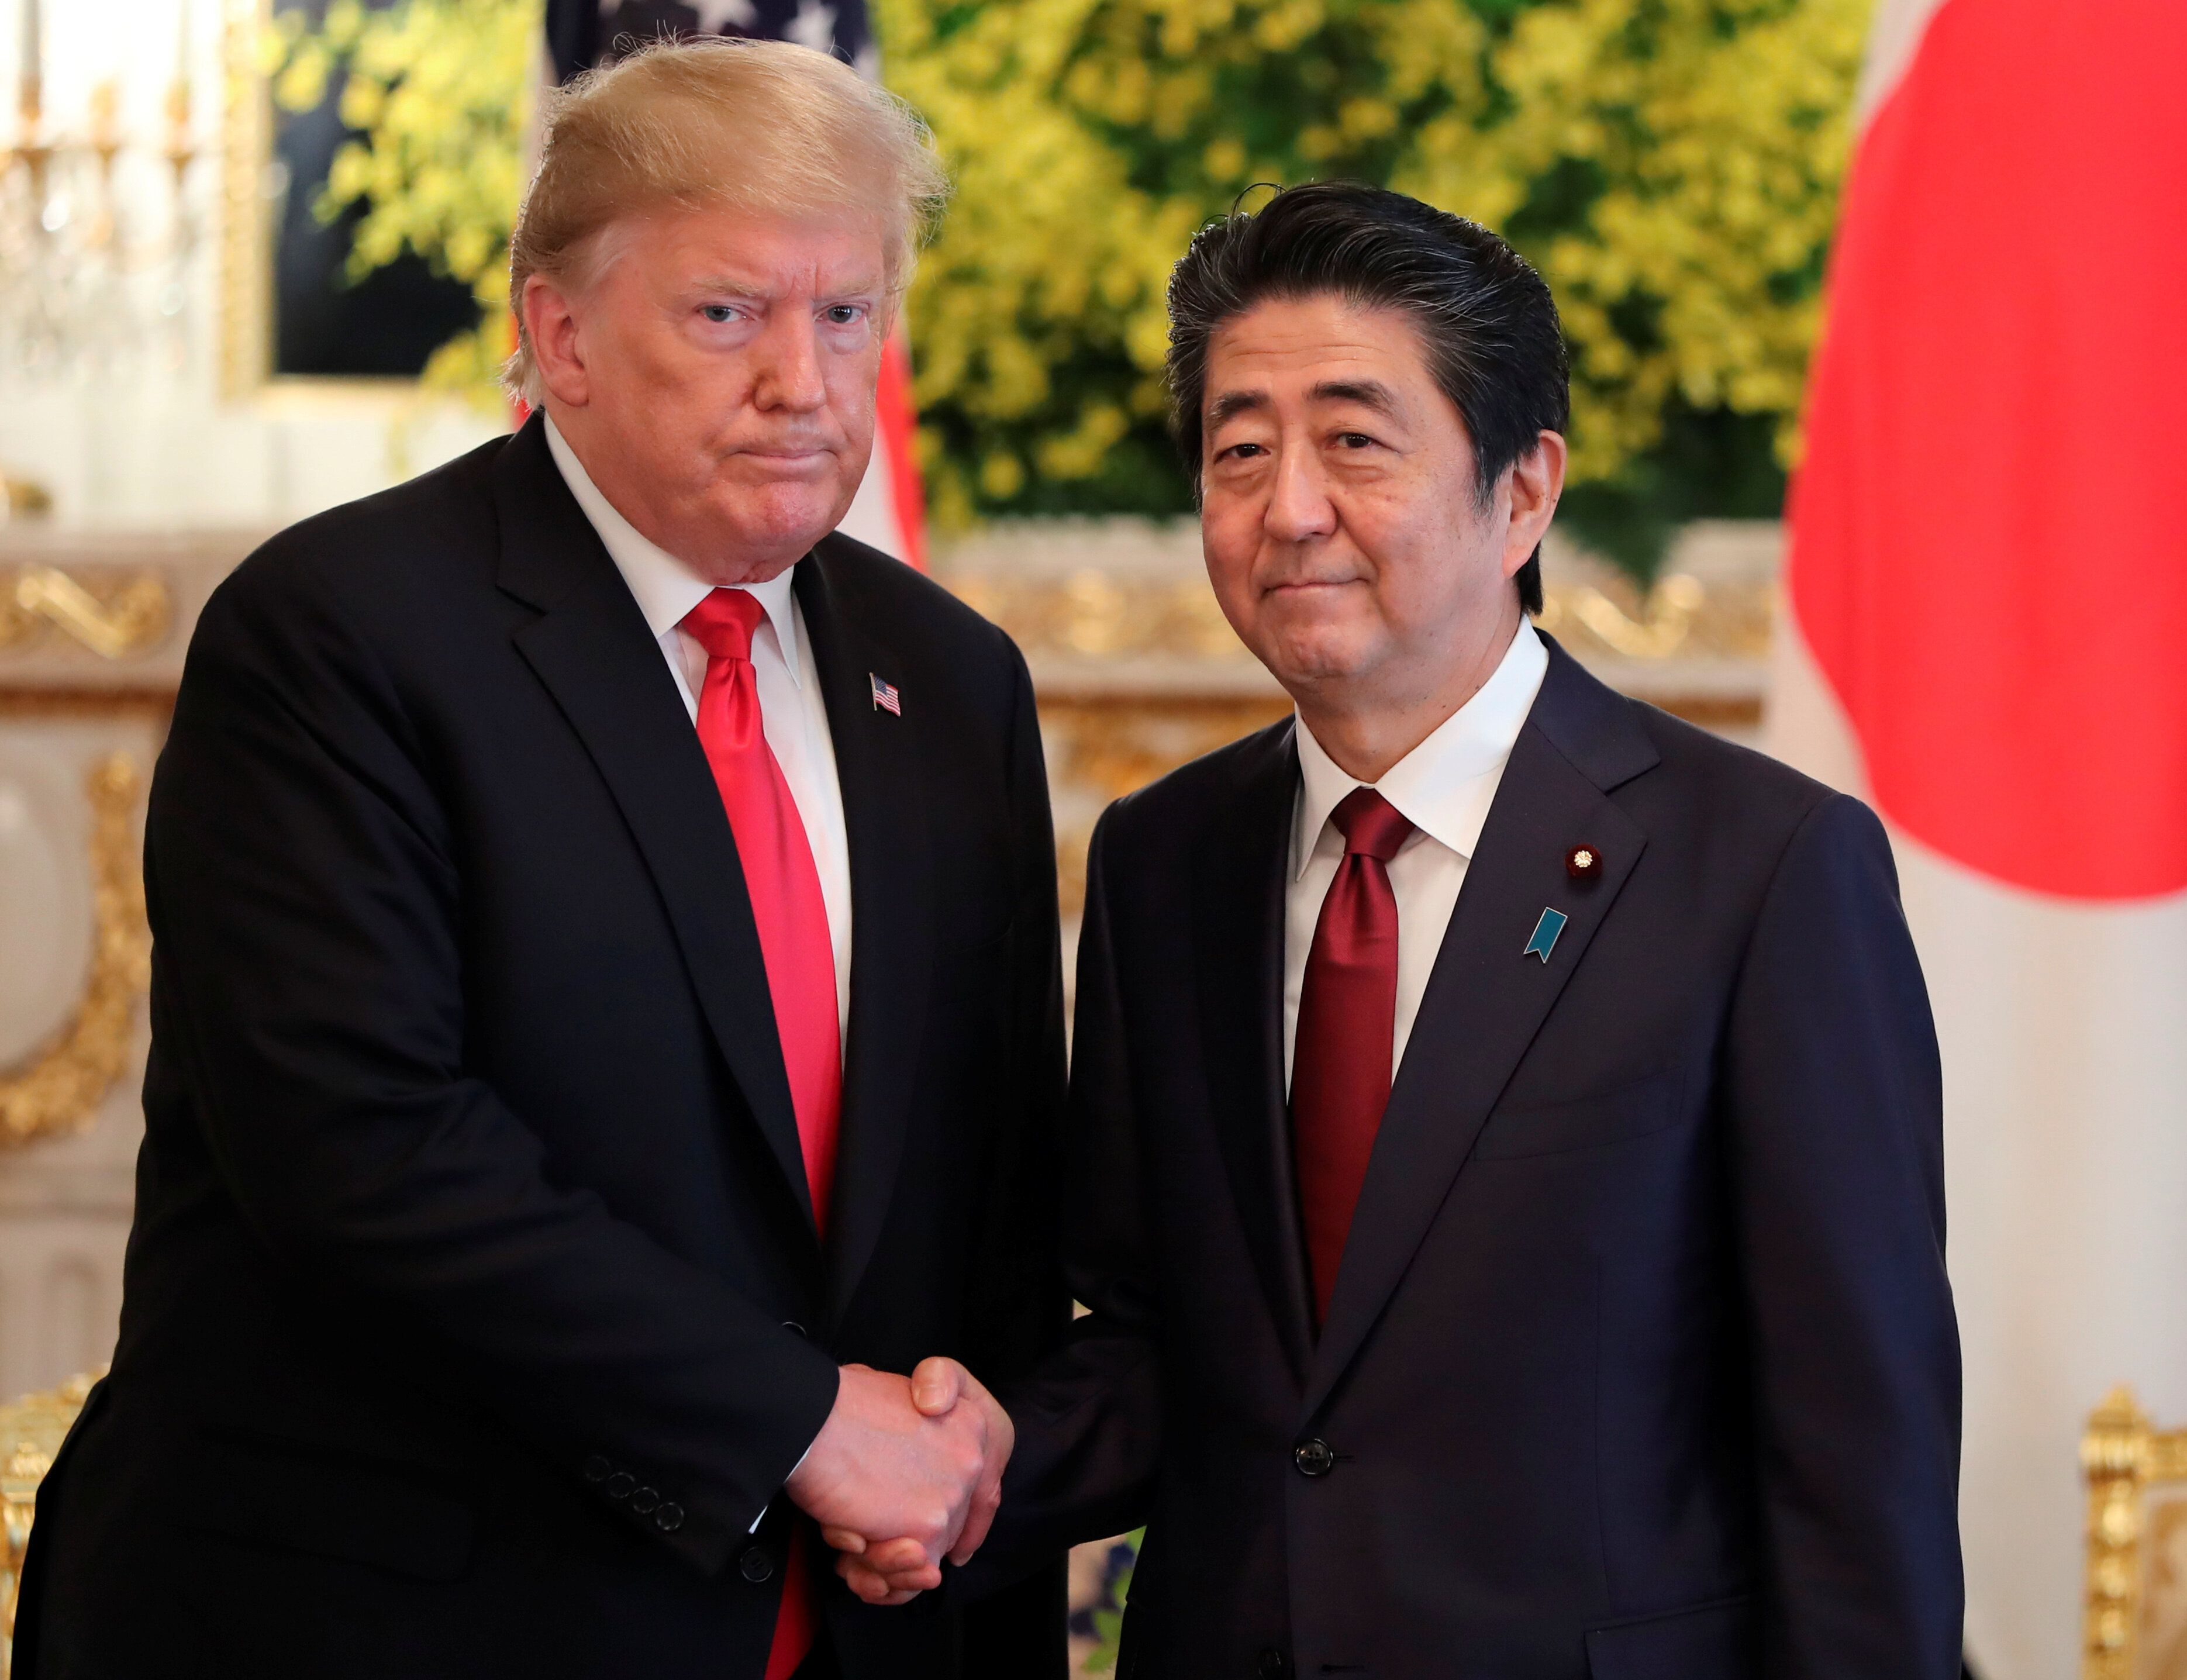 U.S. President Donald Trump meets with Japanese Prime Minister Shinzo Abe at Akasaka Palace, Japanese state guest house in Tokyo May 27, 2019. Eugene Hoshiko/Pool via Reuters